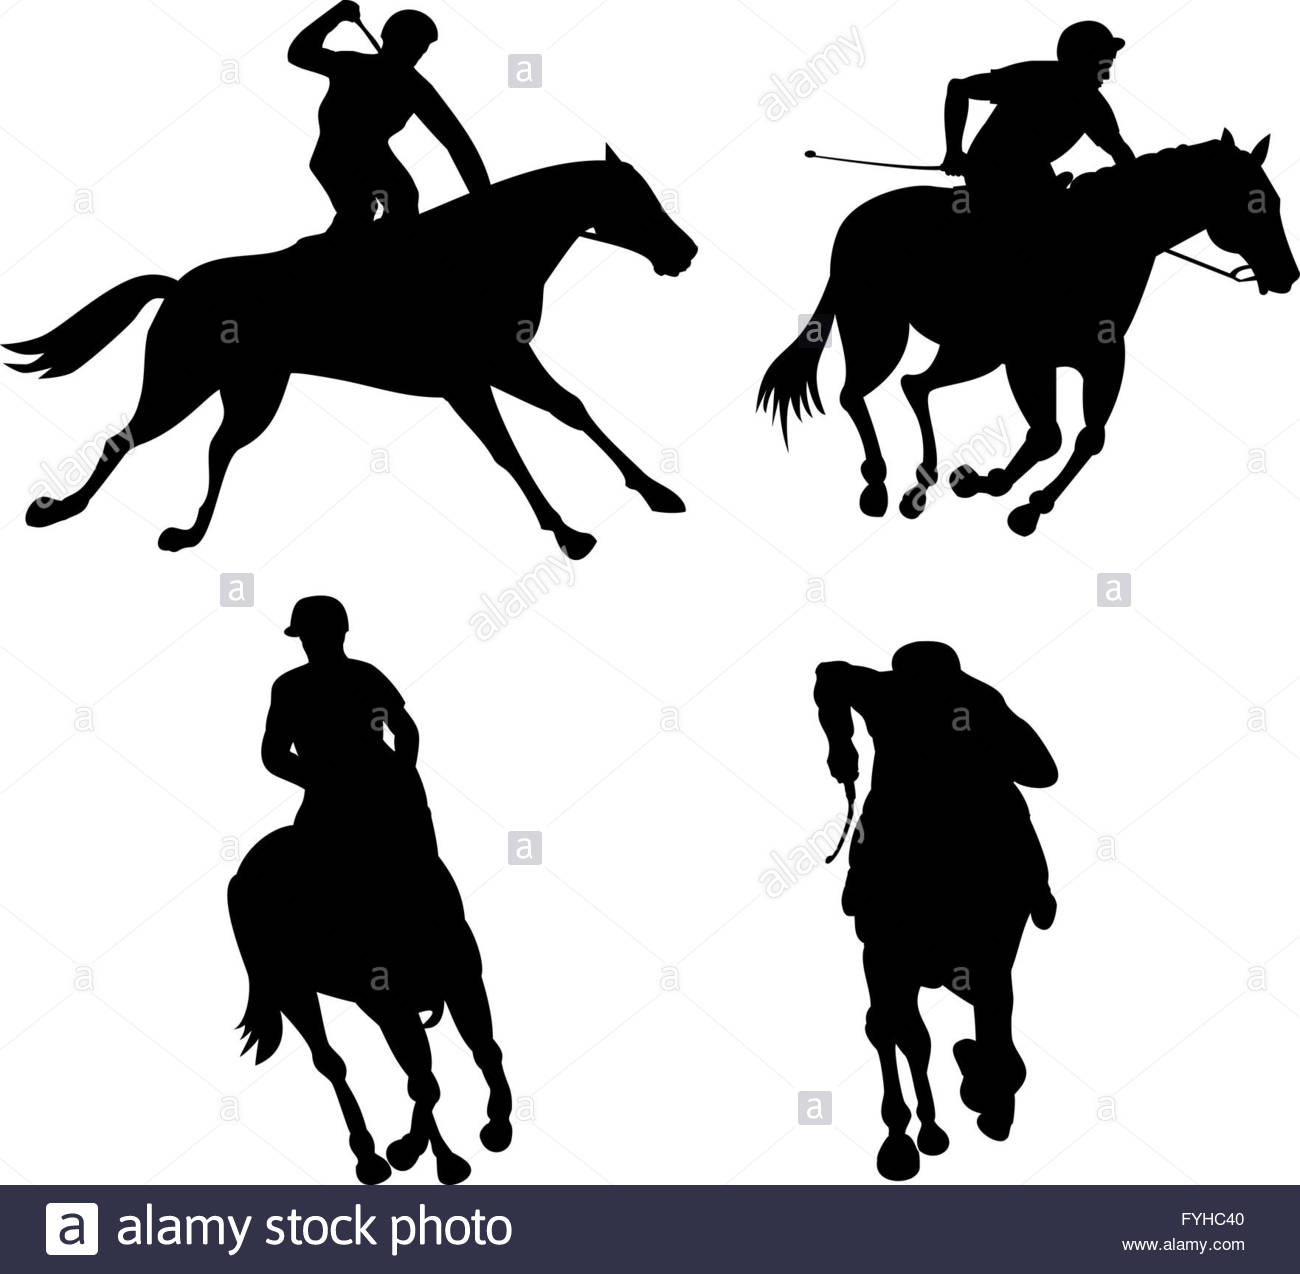 1300x1274 Equestrian Show Silhouette Stock Photo, Royalty Free Image